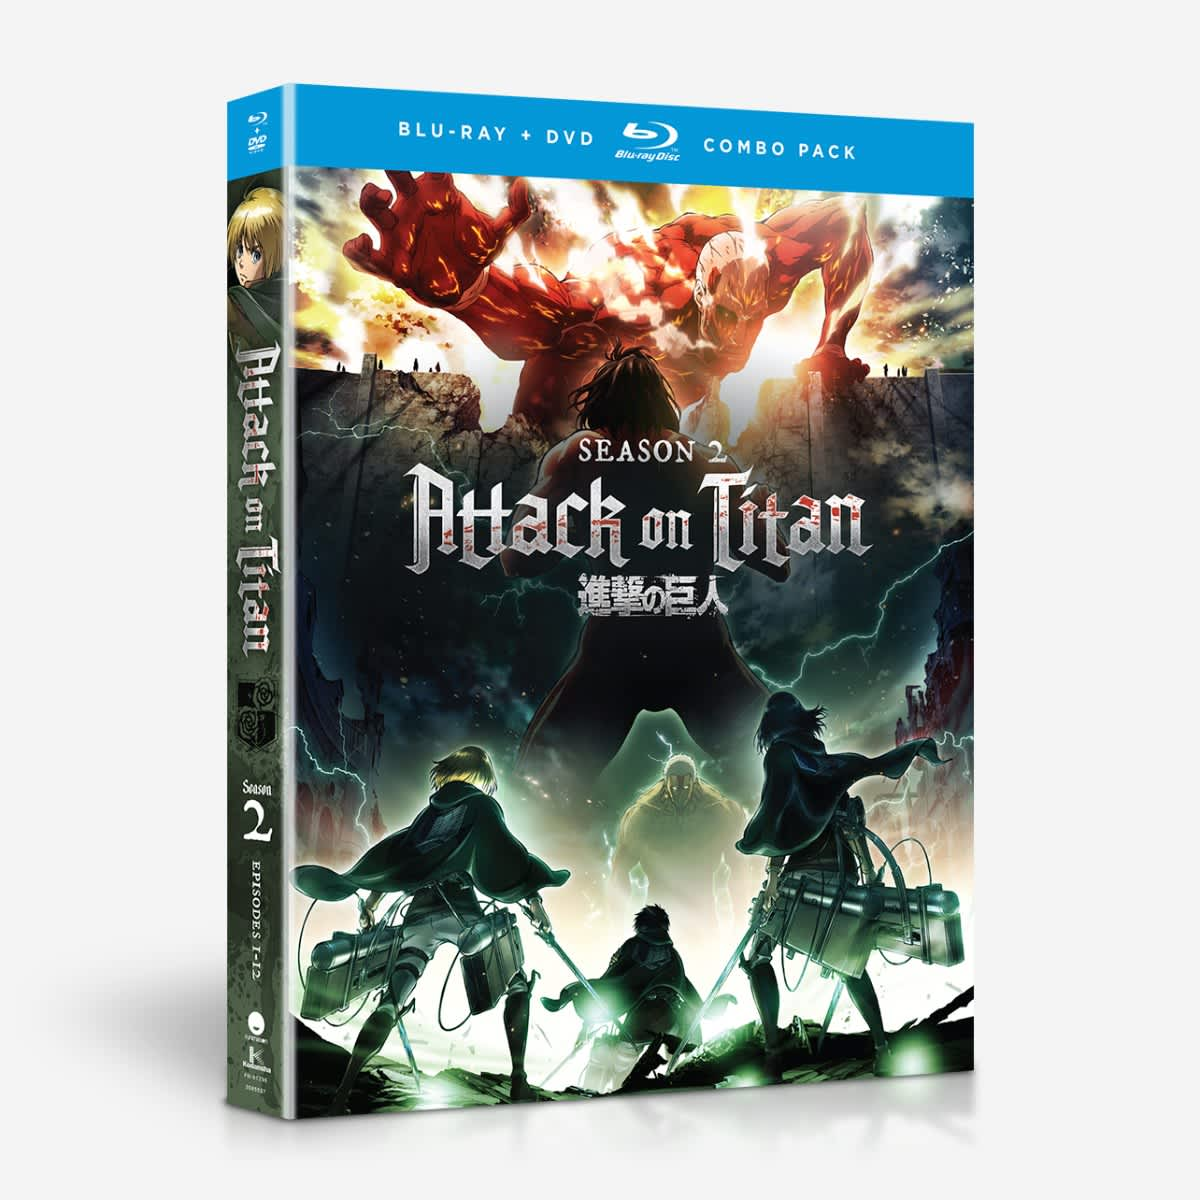 Attack on Titan Season 2 Blu-Ray/DVD